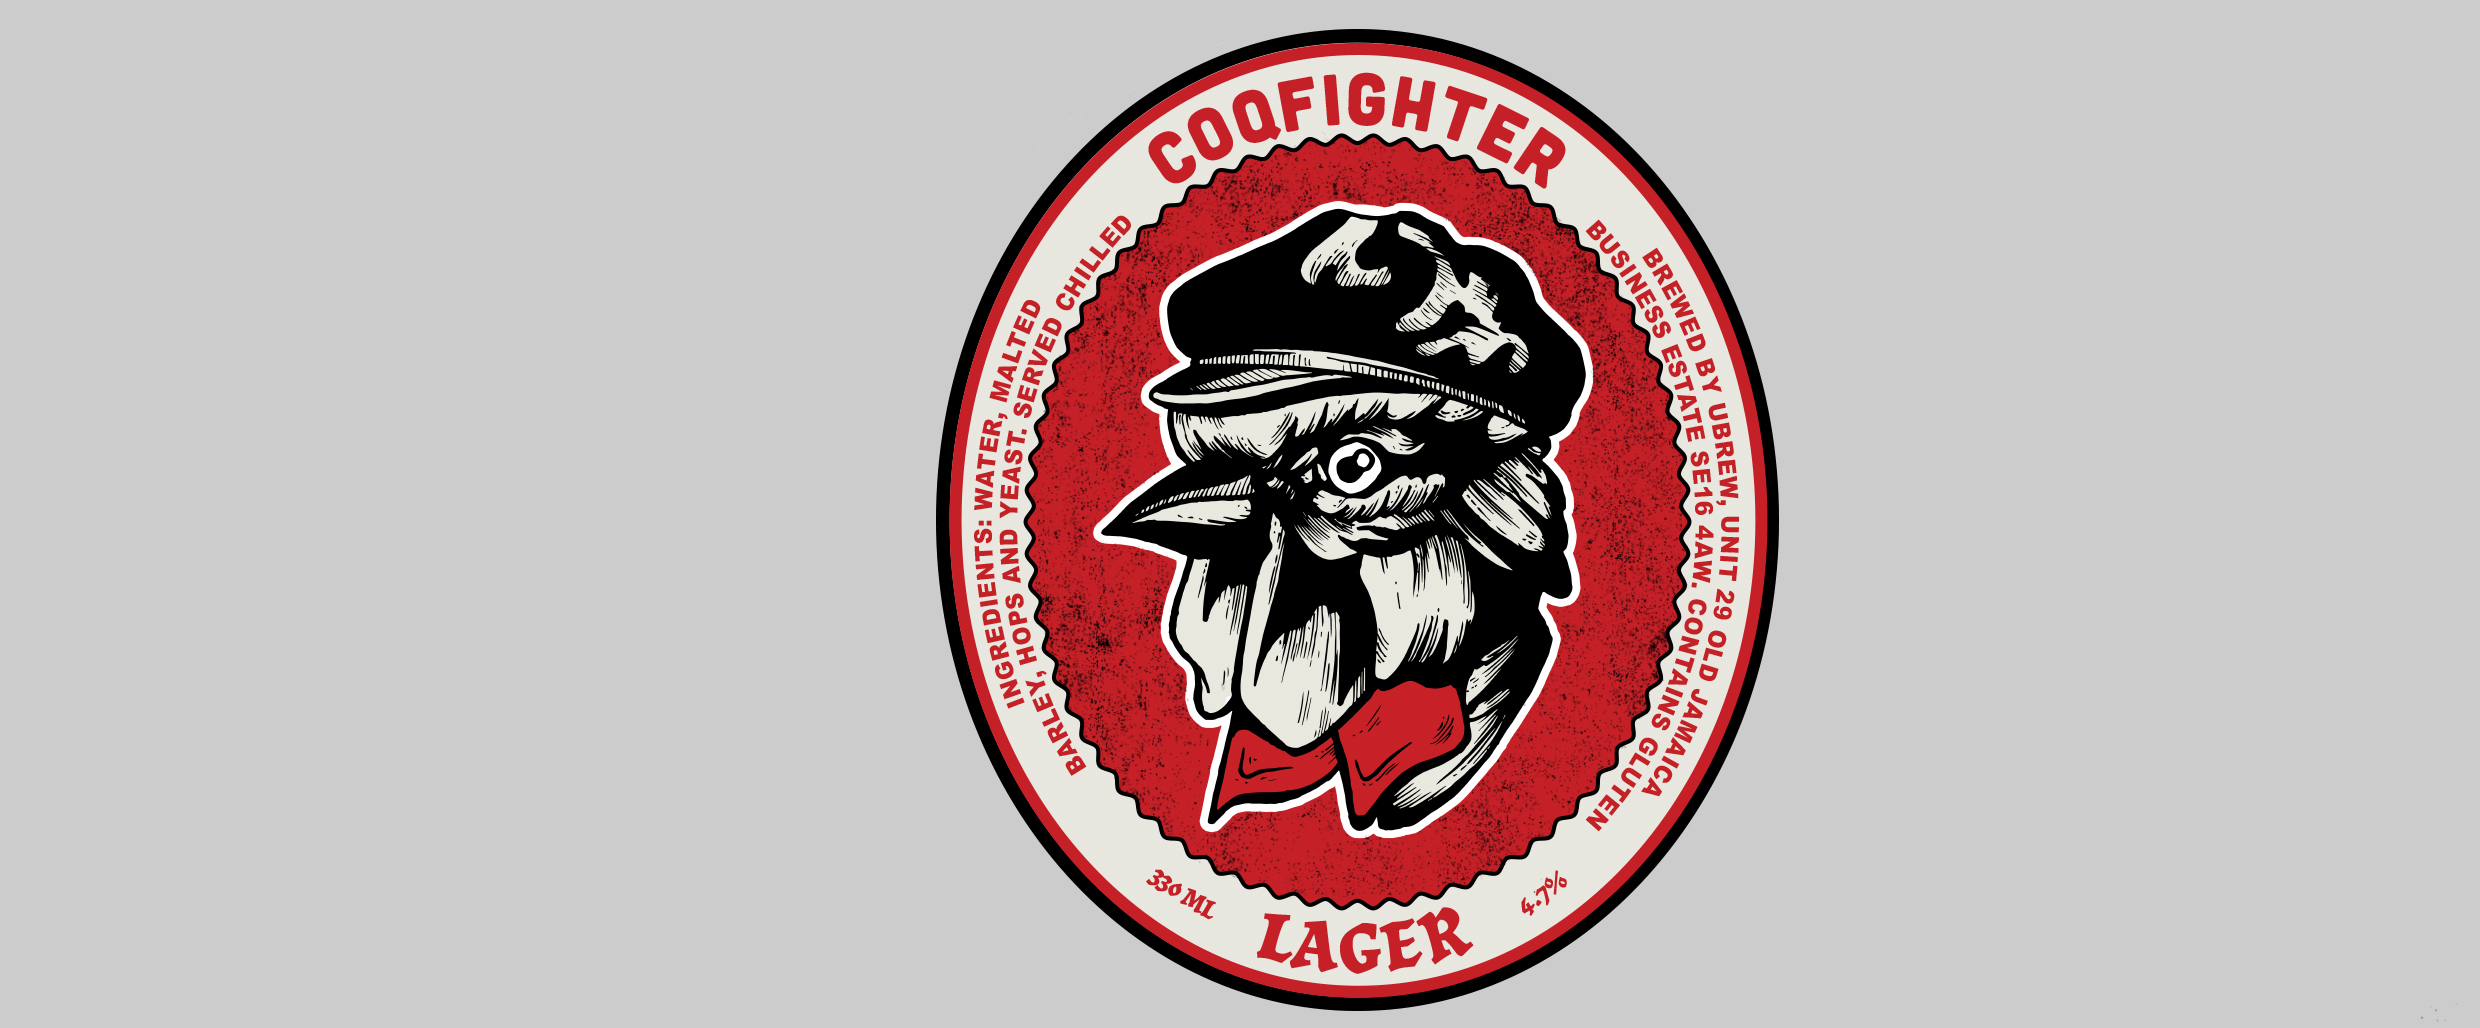 LAGERLABEL_coqfighter_final_revised.jpg